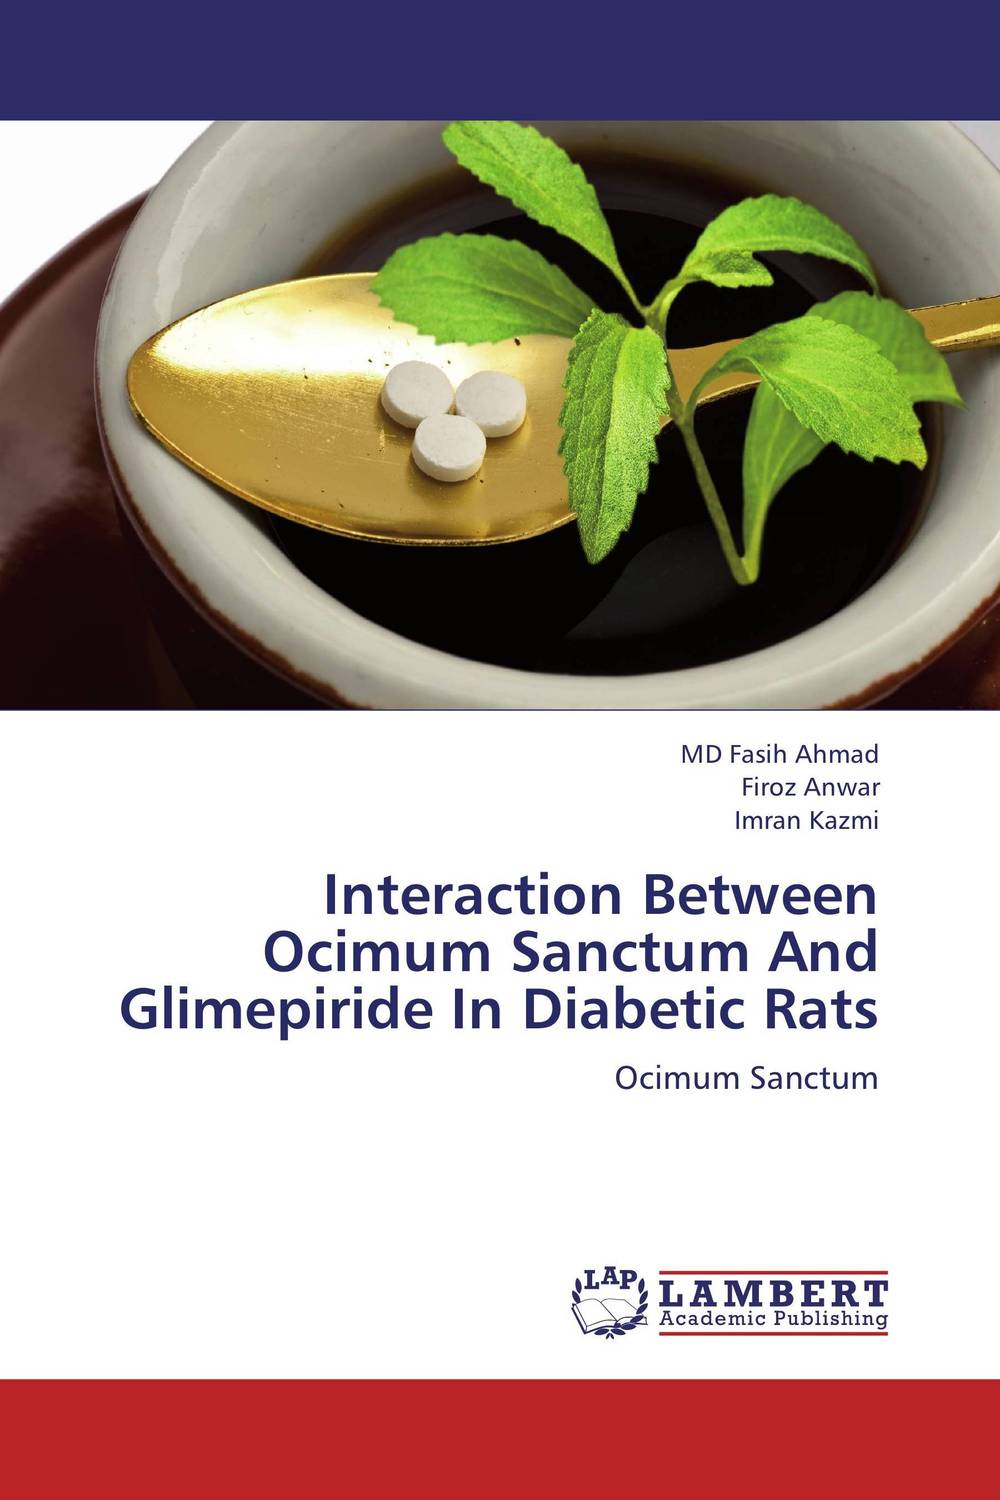 Interaction Between Ocimum Sanctum And Glimepiride In Diabetic Rats mohd mazid and taqi ahmed khan interaction between auxin and vigna radiata l under cadmium stress